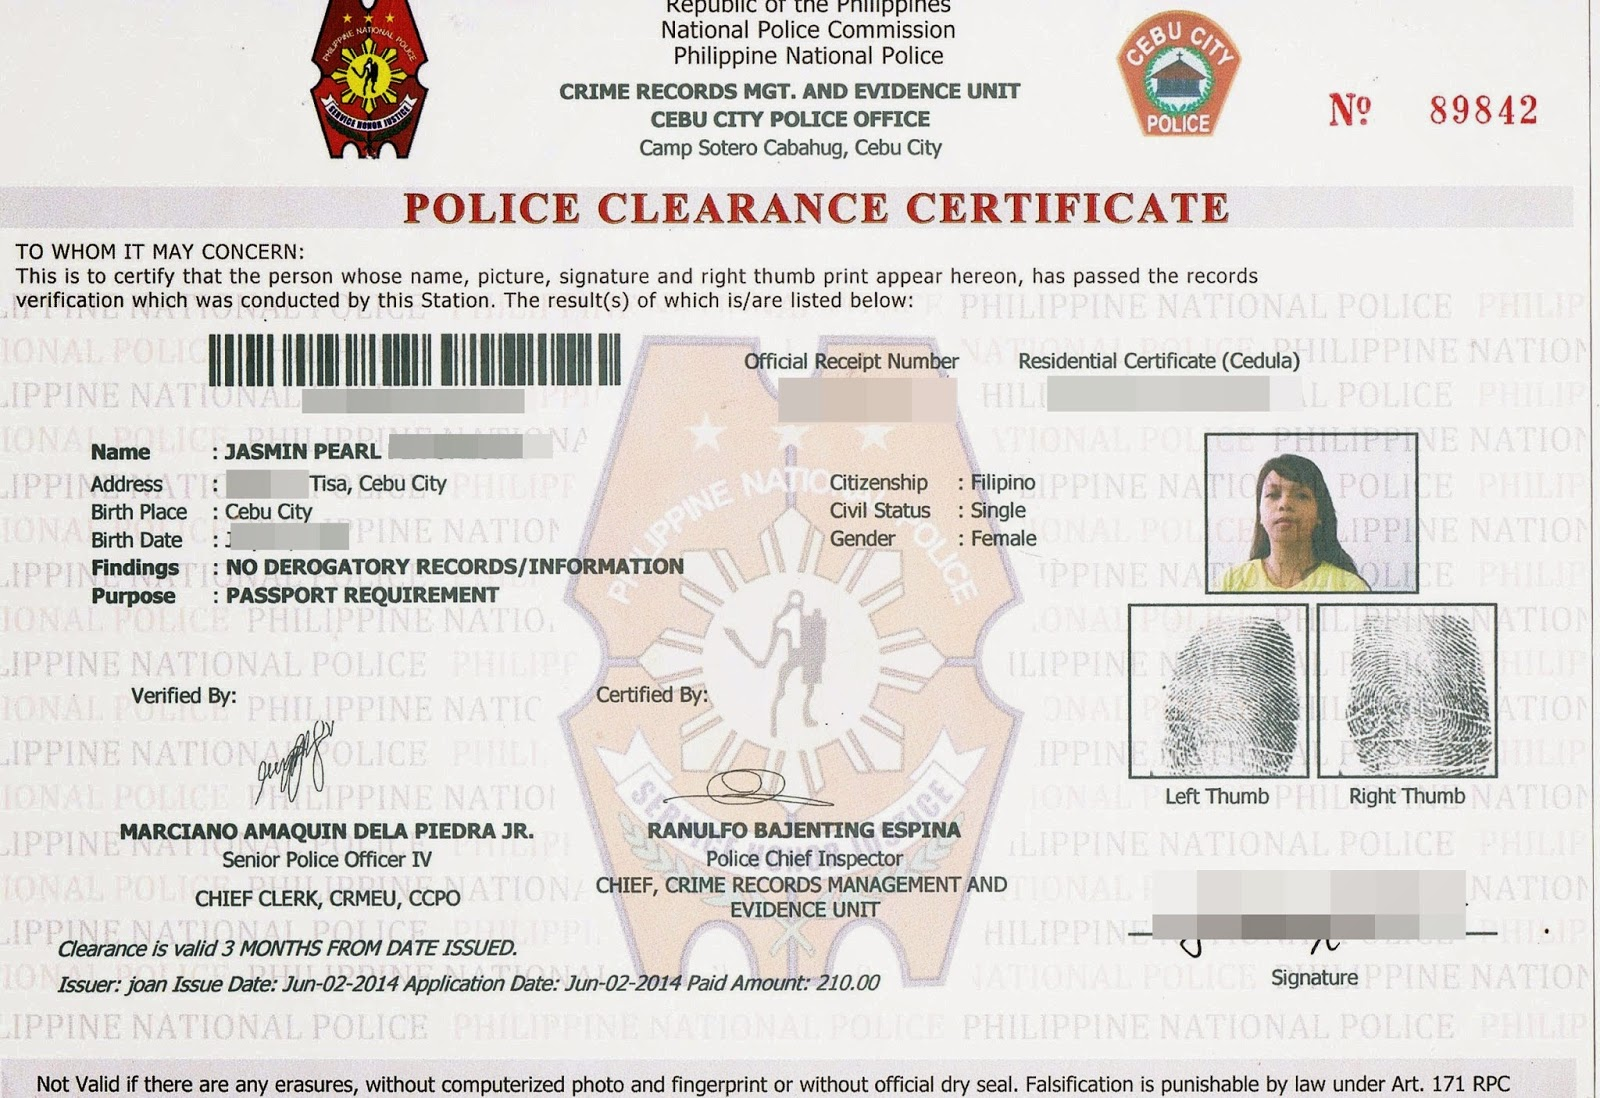 New police clearance form for citizenship citizenship for clearance form police for other clearance use as get id police to primary how thecheapjerseys Images